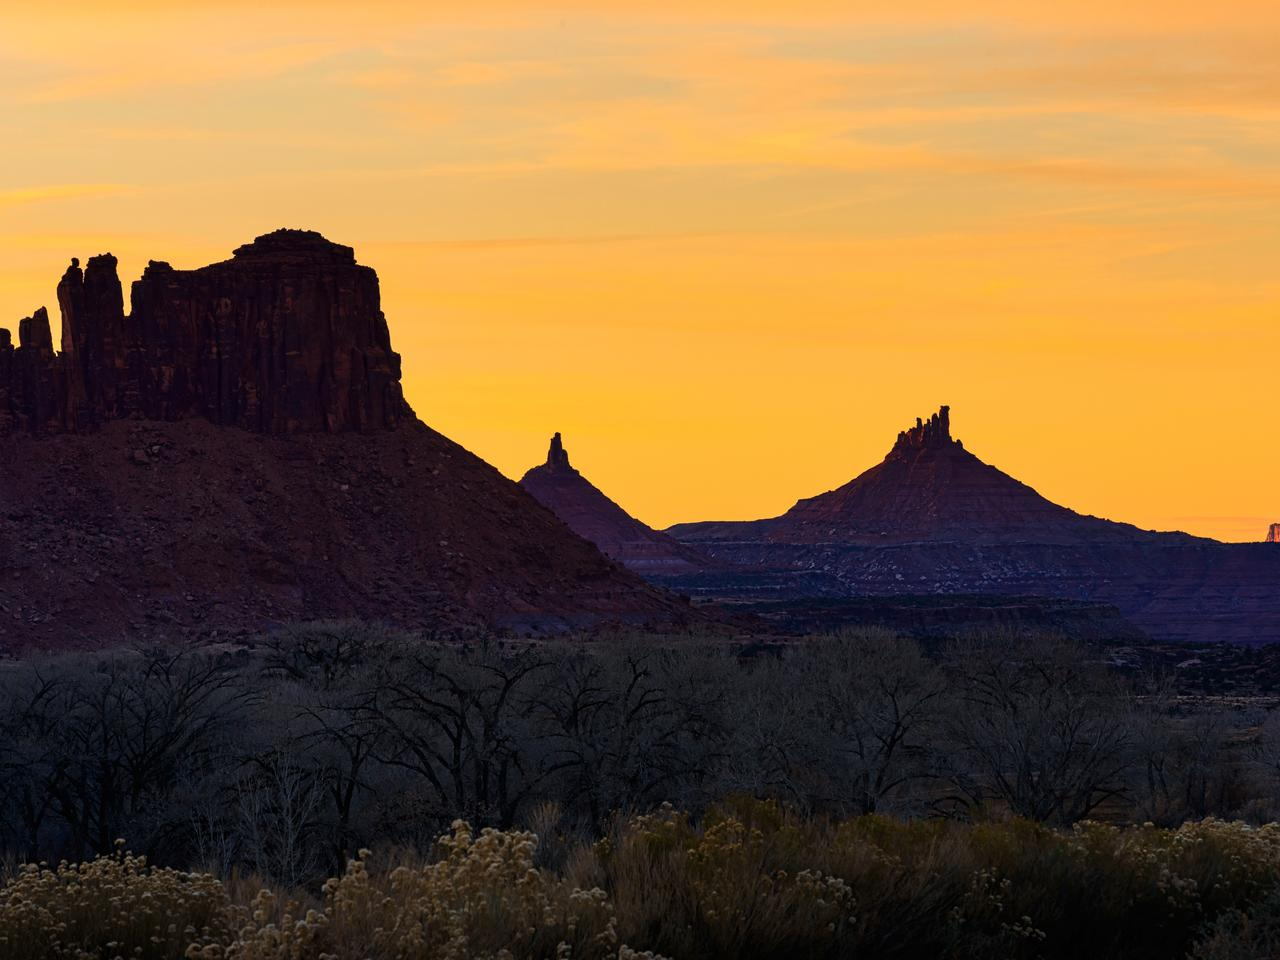 Indian Creek Bears Ears National Monument - Scenic canyon country in Utah, USA.